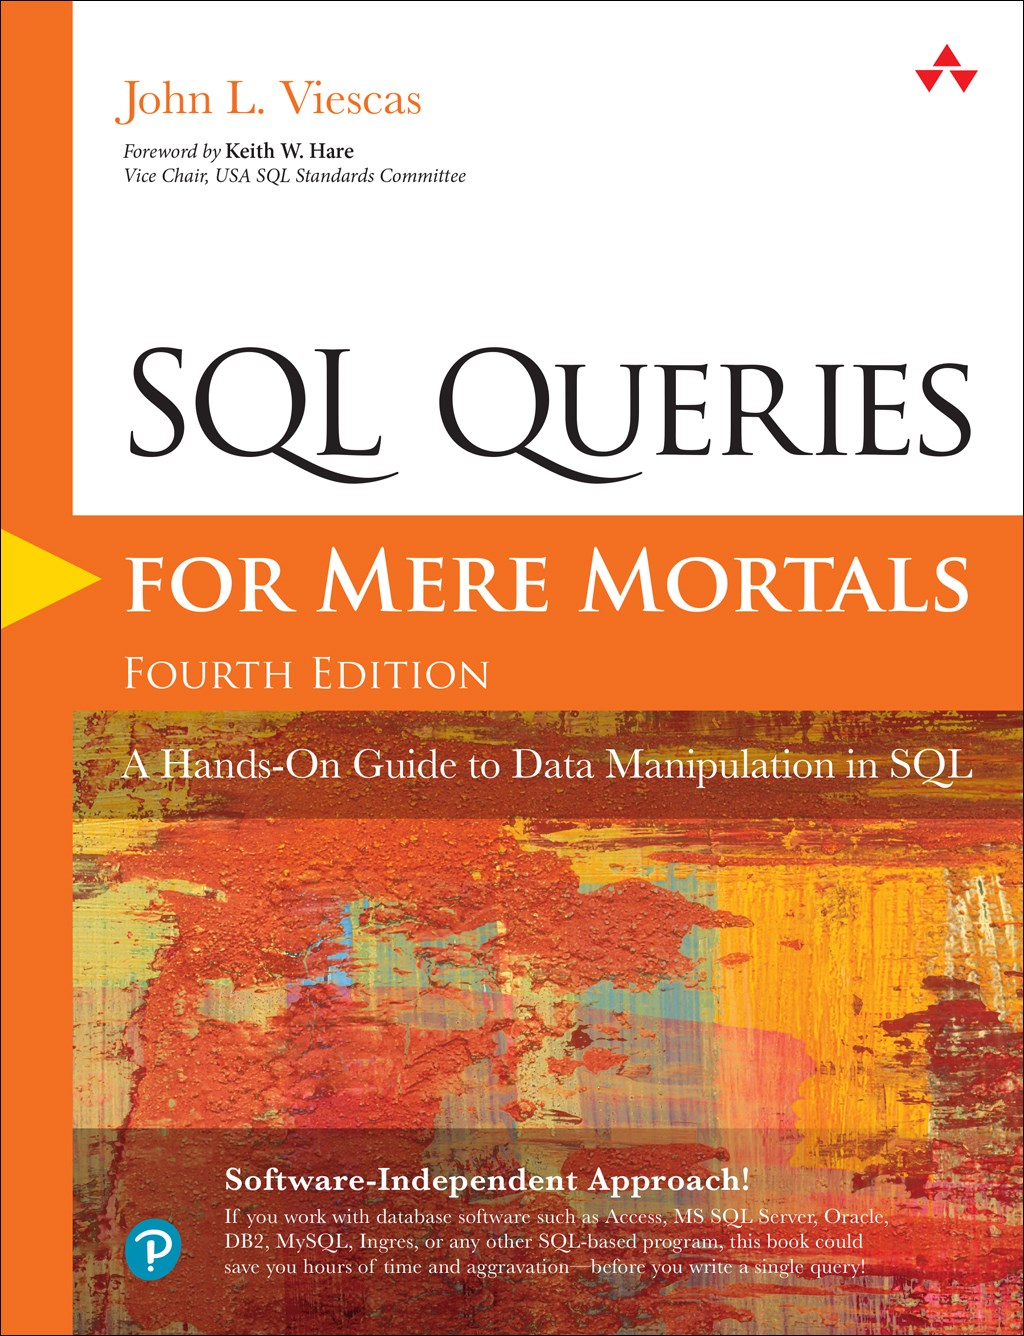 SQL Queries for Mere Mortals: A Hands-On Guide to Data Manipulation in SQL, 4th Edition